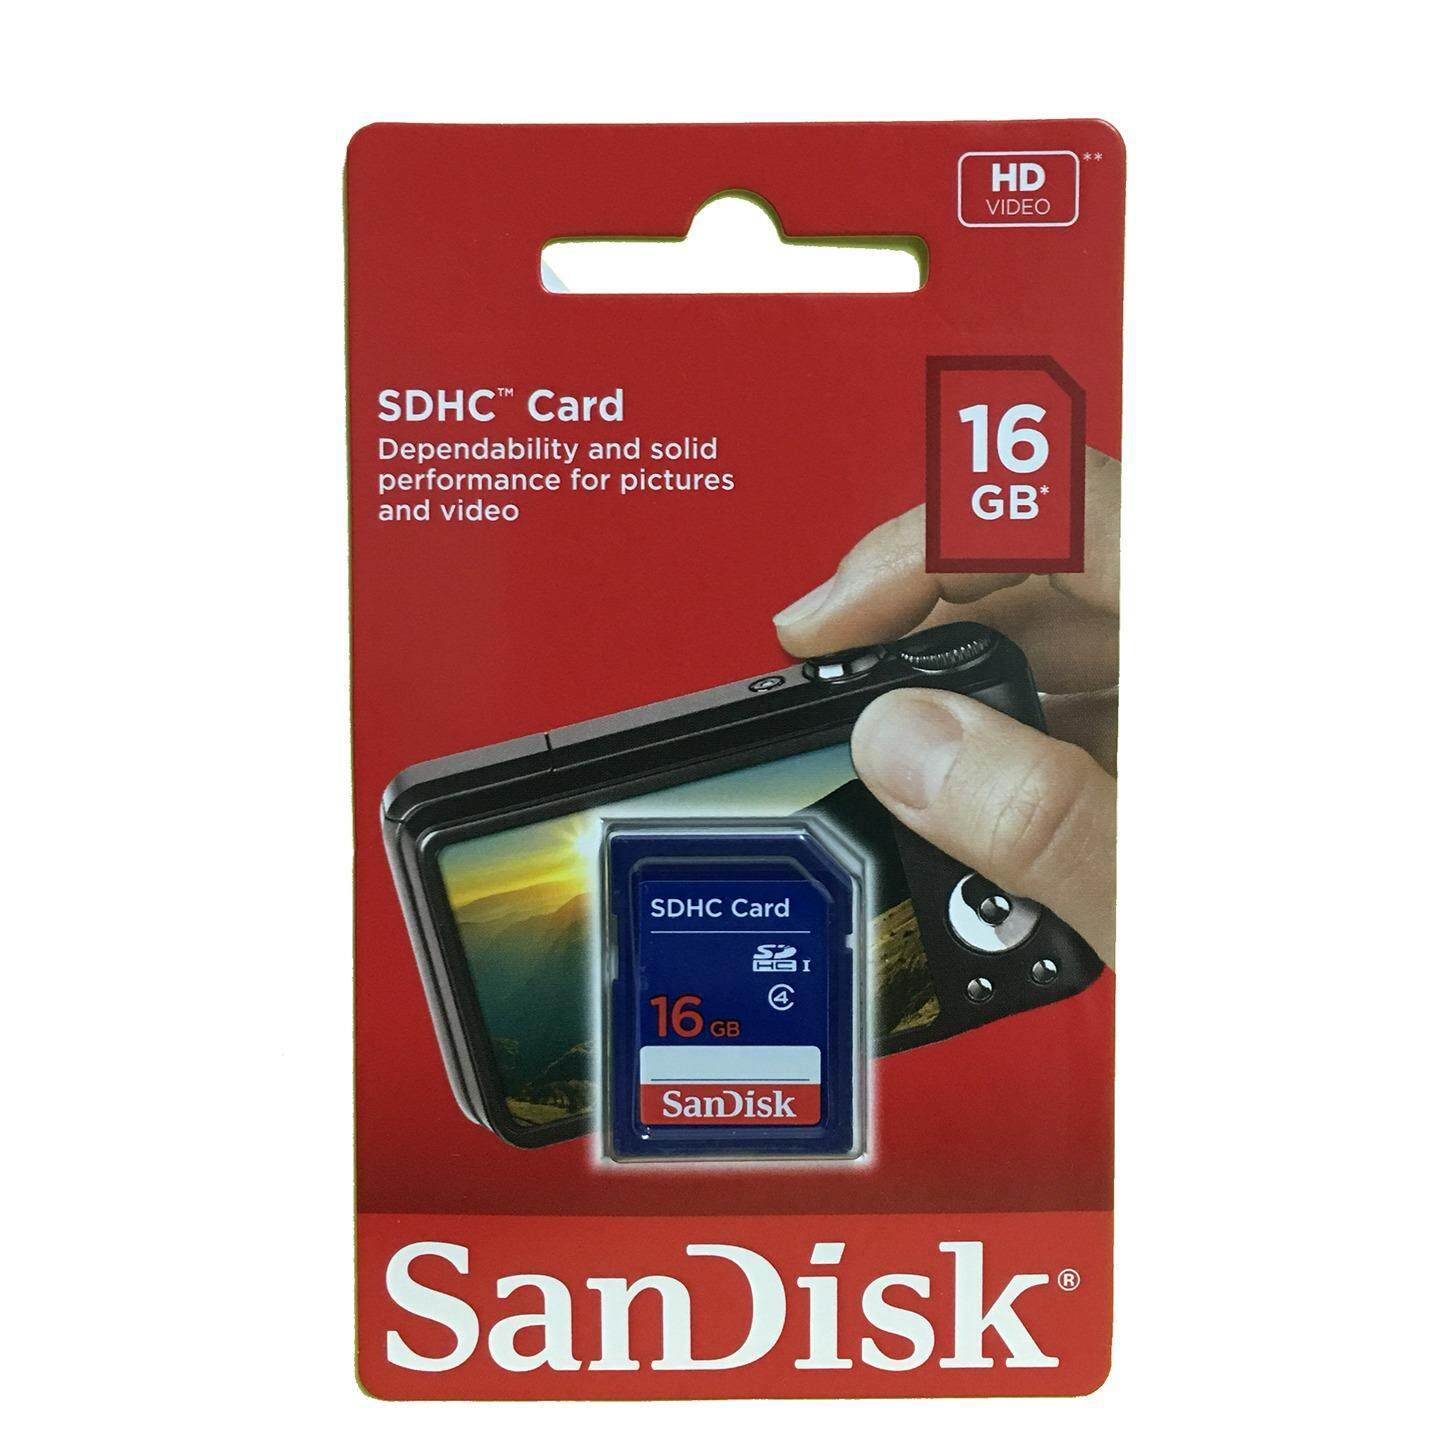 Sandisk Sdhc Card 16gb Price Online In Malaysia October Sdsqunc 064g Gn6ma Microsd Ultra 80mb S 64gb Product